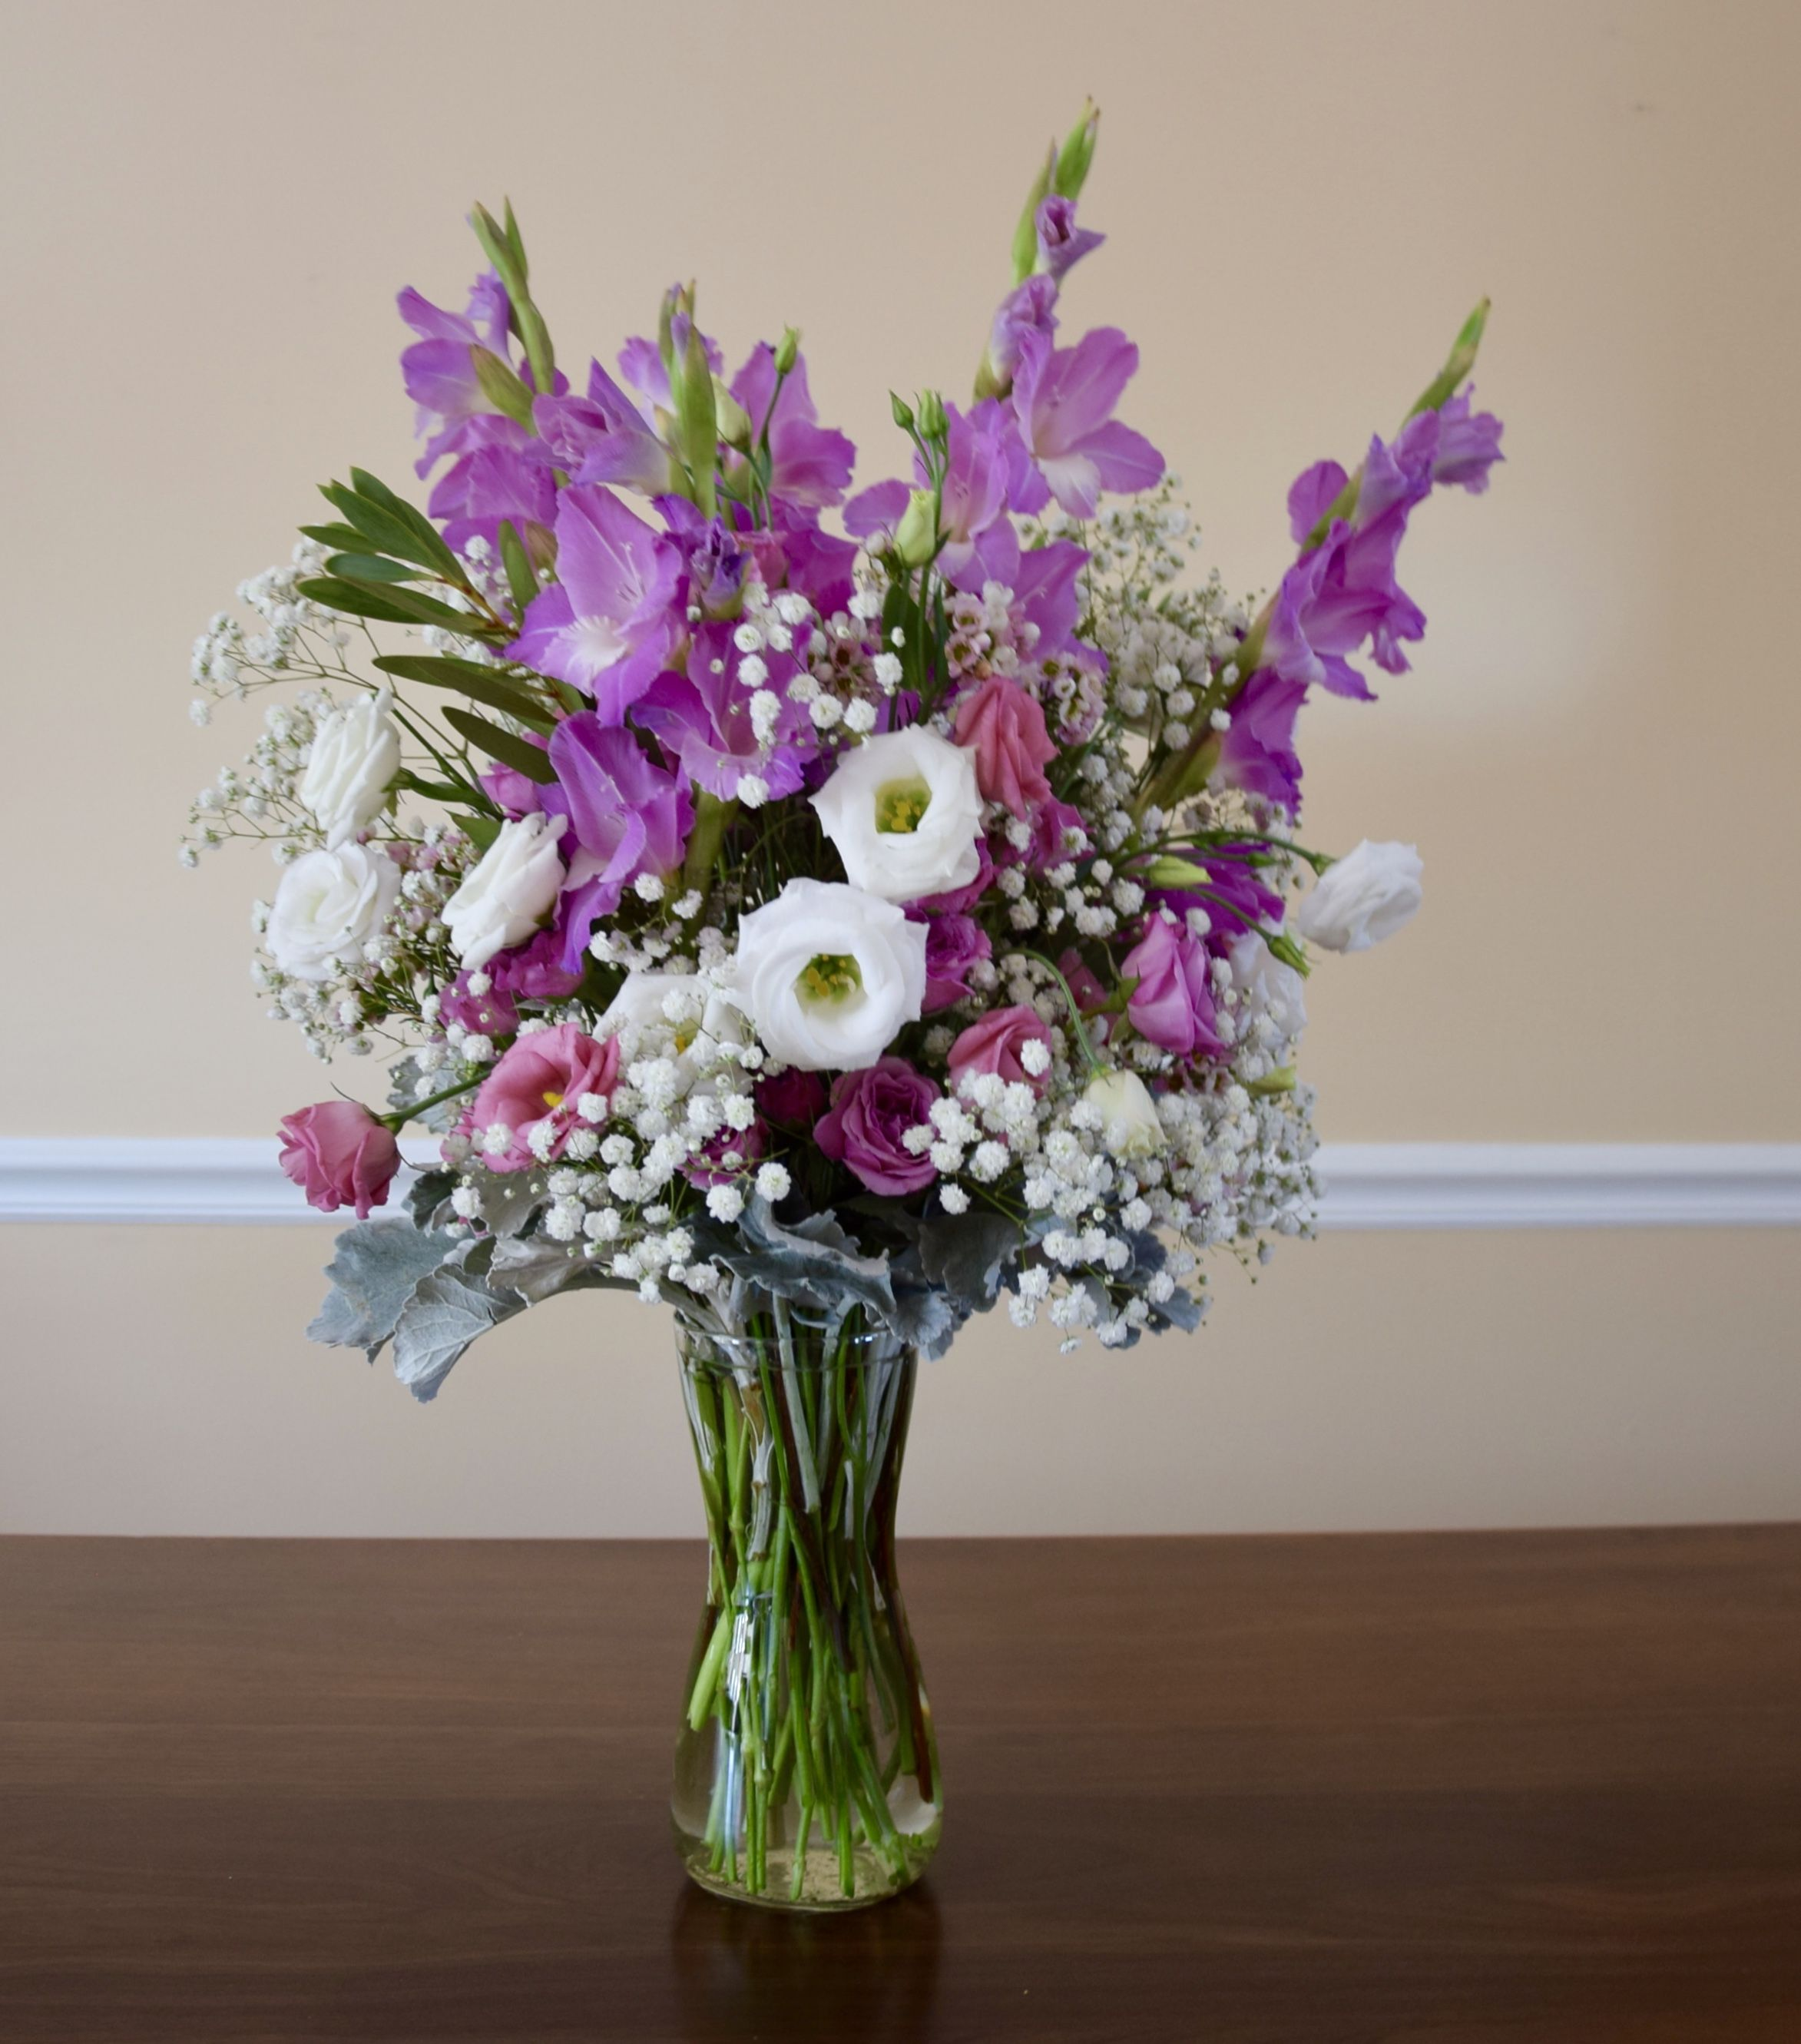 Flower bouquet for easter with gladiolas lisianthus spray roses flower bouquet for easter with gladiolas lisianthus spray roses baby breath and dusty izmirmasajfo